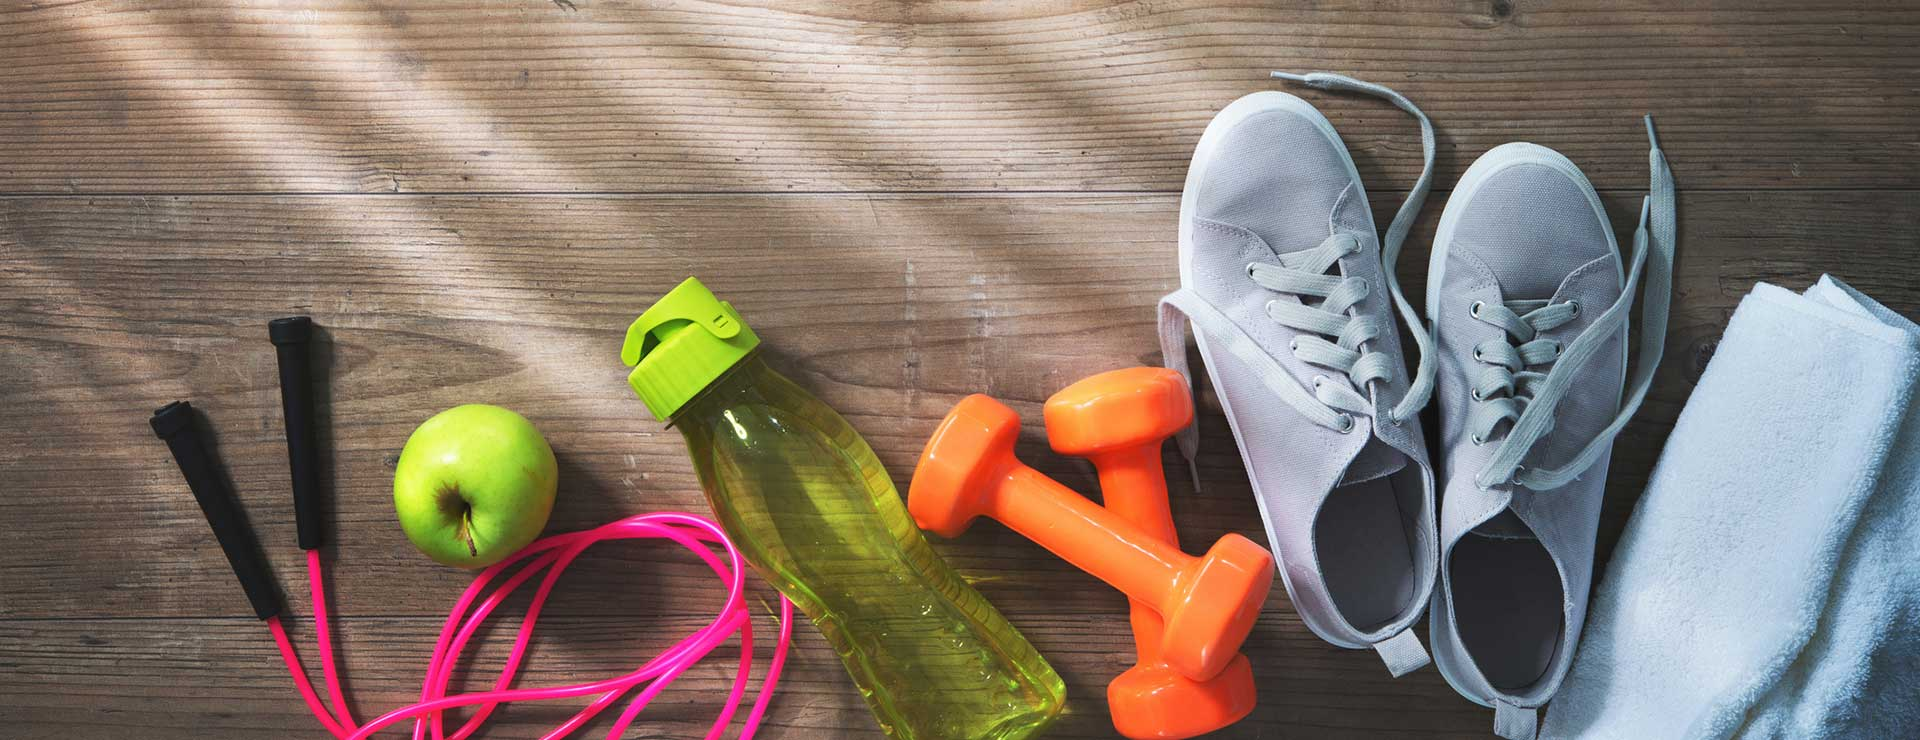 Jump rope, apple, water bottle, weights, tennis shoes and towel on the floor